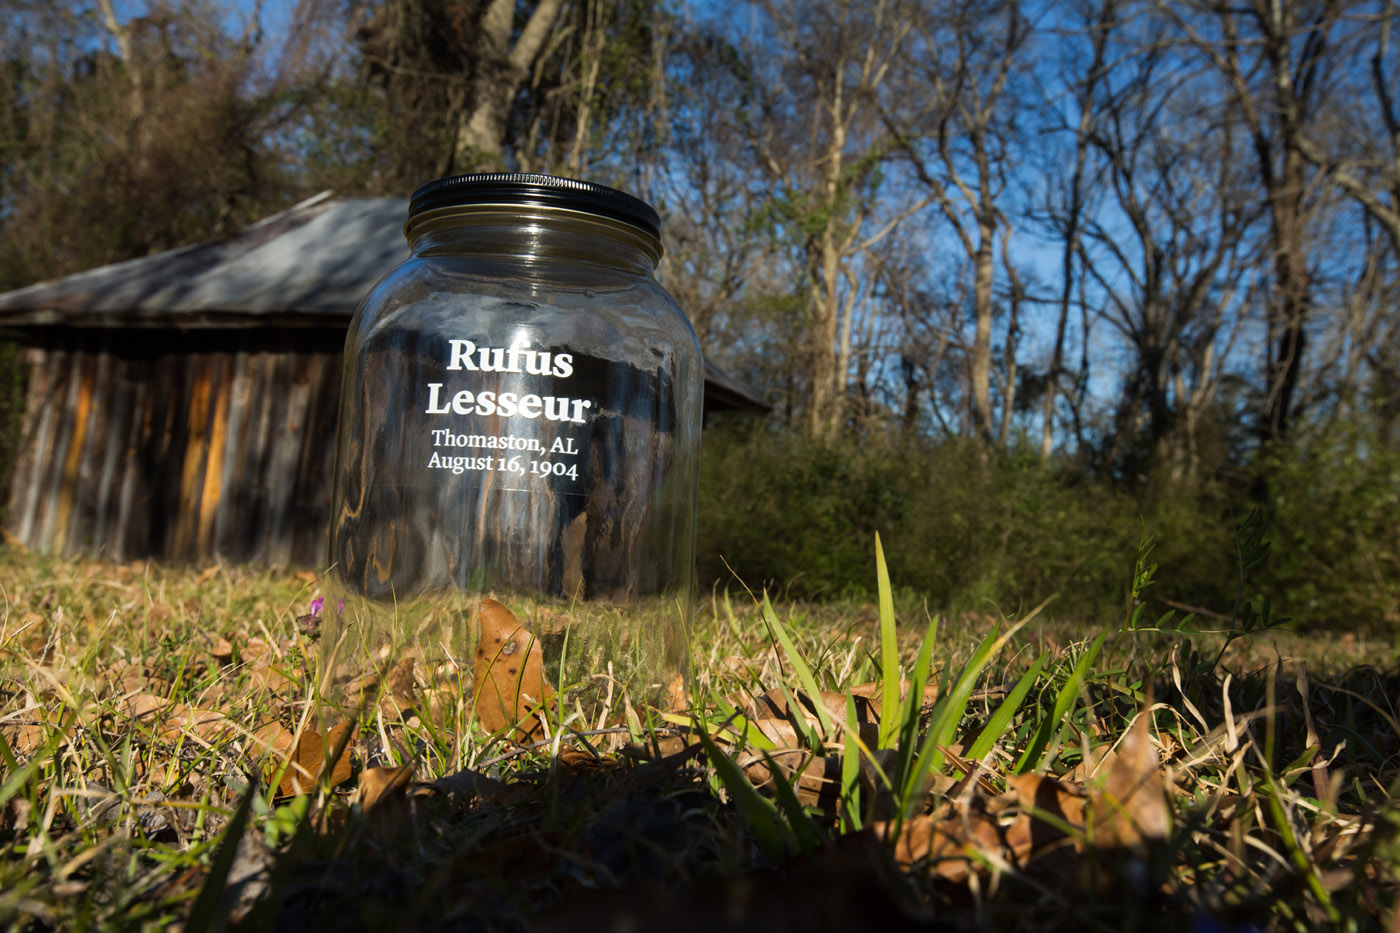 Thomaston, Ala - 02-12-16 - This capped jar is the type which used and inscribed the names of lynch victims. This capped jar  was later filled with soil from this site where Mr.Lesseur, was first detained and later lynched on August 16, 1904. He was accused of raping a white woman on Aug. 14 of that year. This is a soil collecting for the lynch site project, for The Equal Justice Initiative. - Credit Photo by Ozier Muhammad